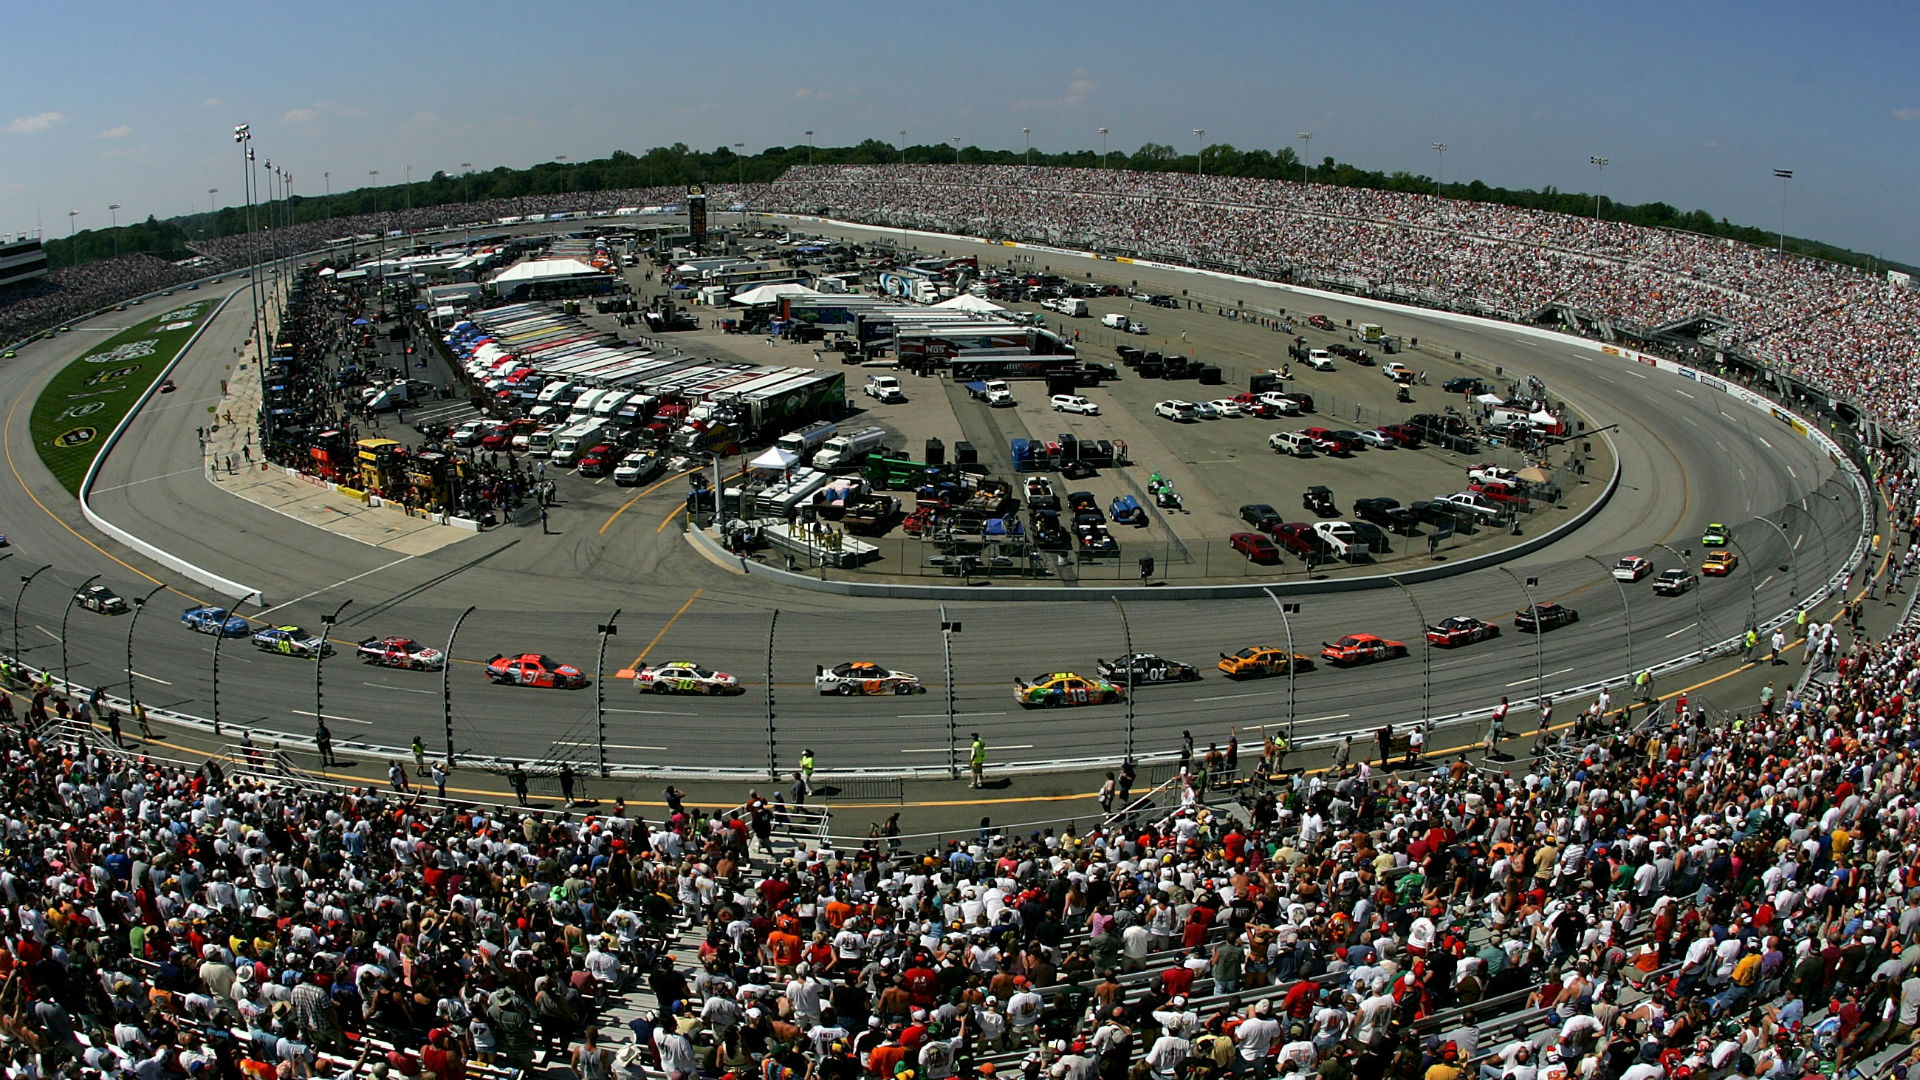 NASCAR at Richmond: TV schedule, dates, times, qualifying ...